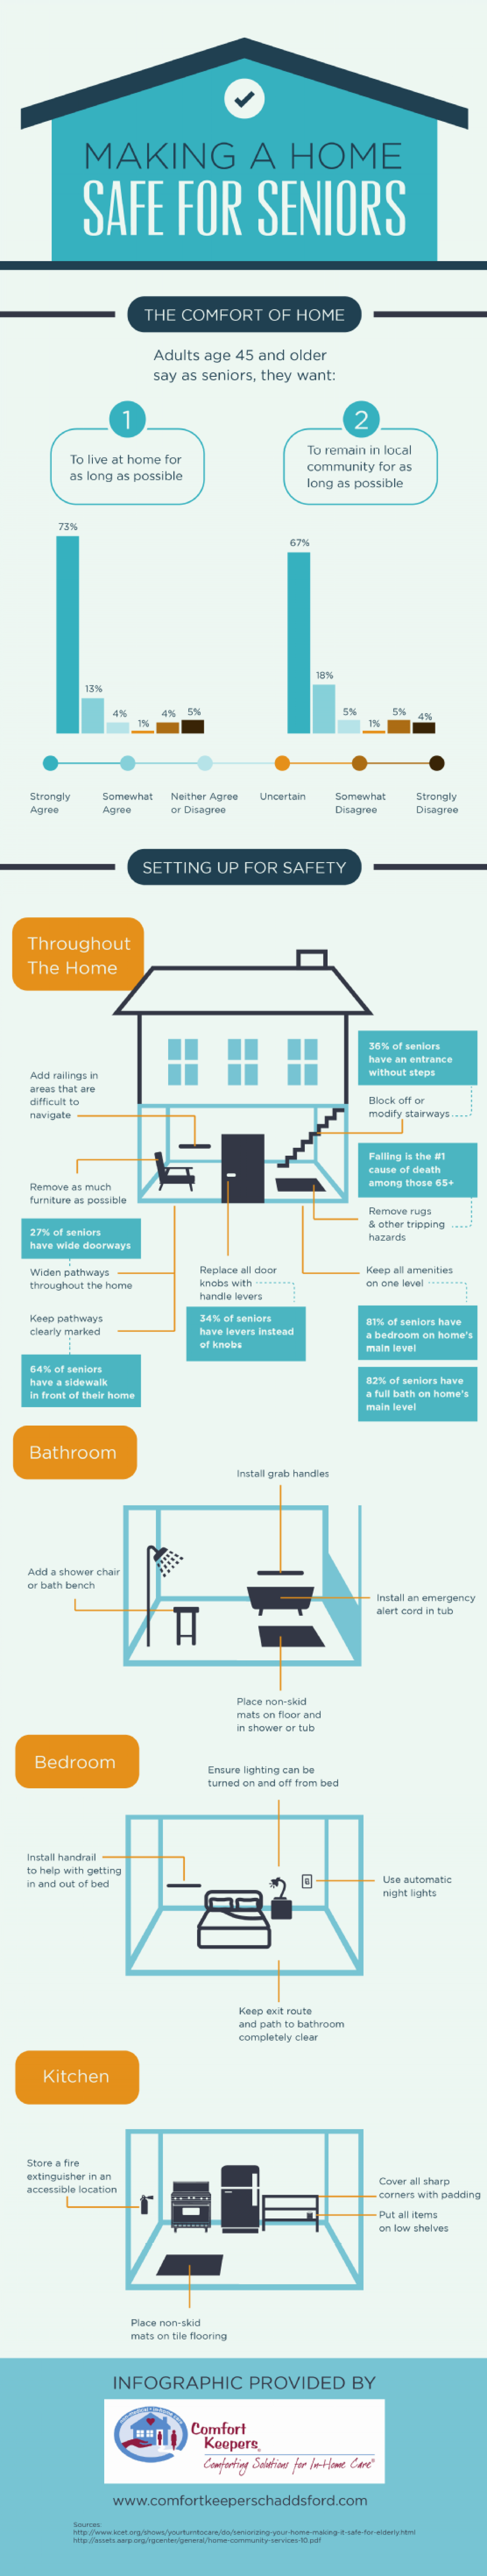 Making a Home Safe for Seniors Infographic